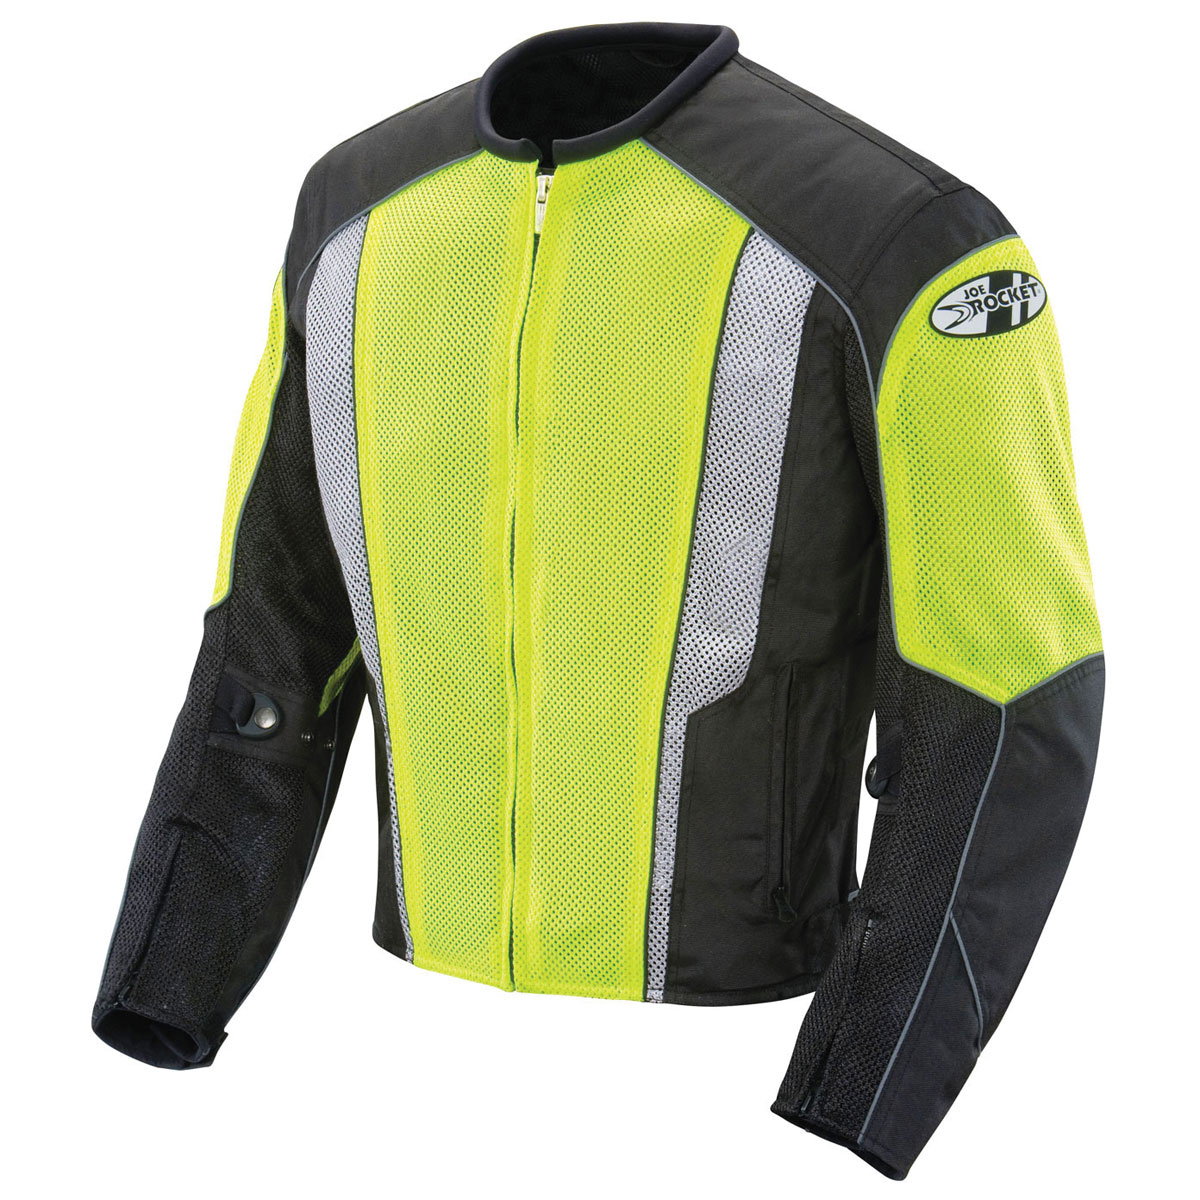 Joe Rocket Men's Phoenix 5.0 Neon/Black Mesh Jacket